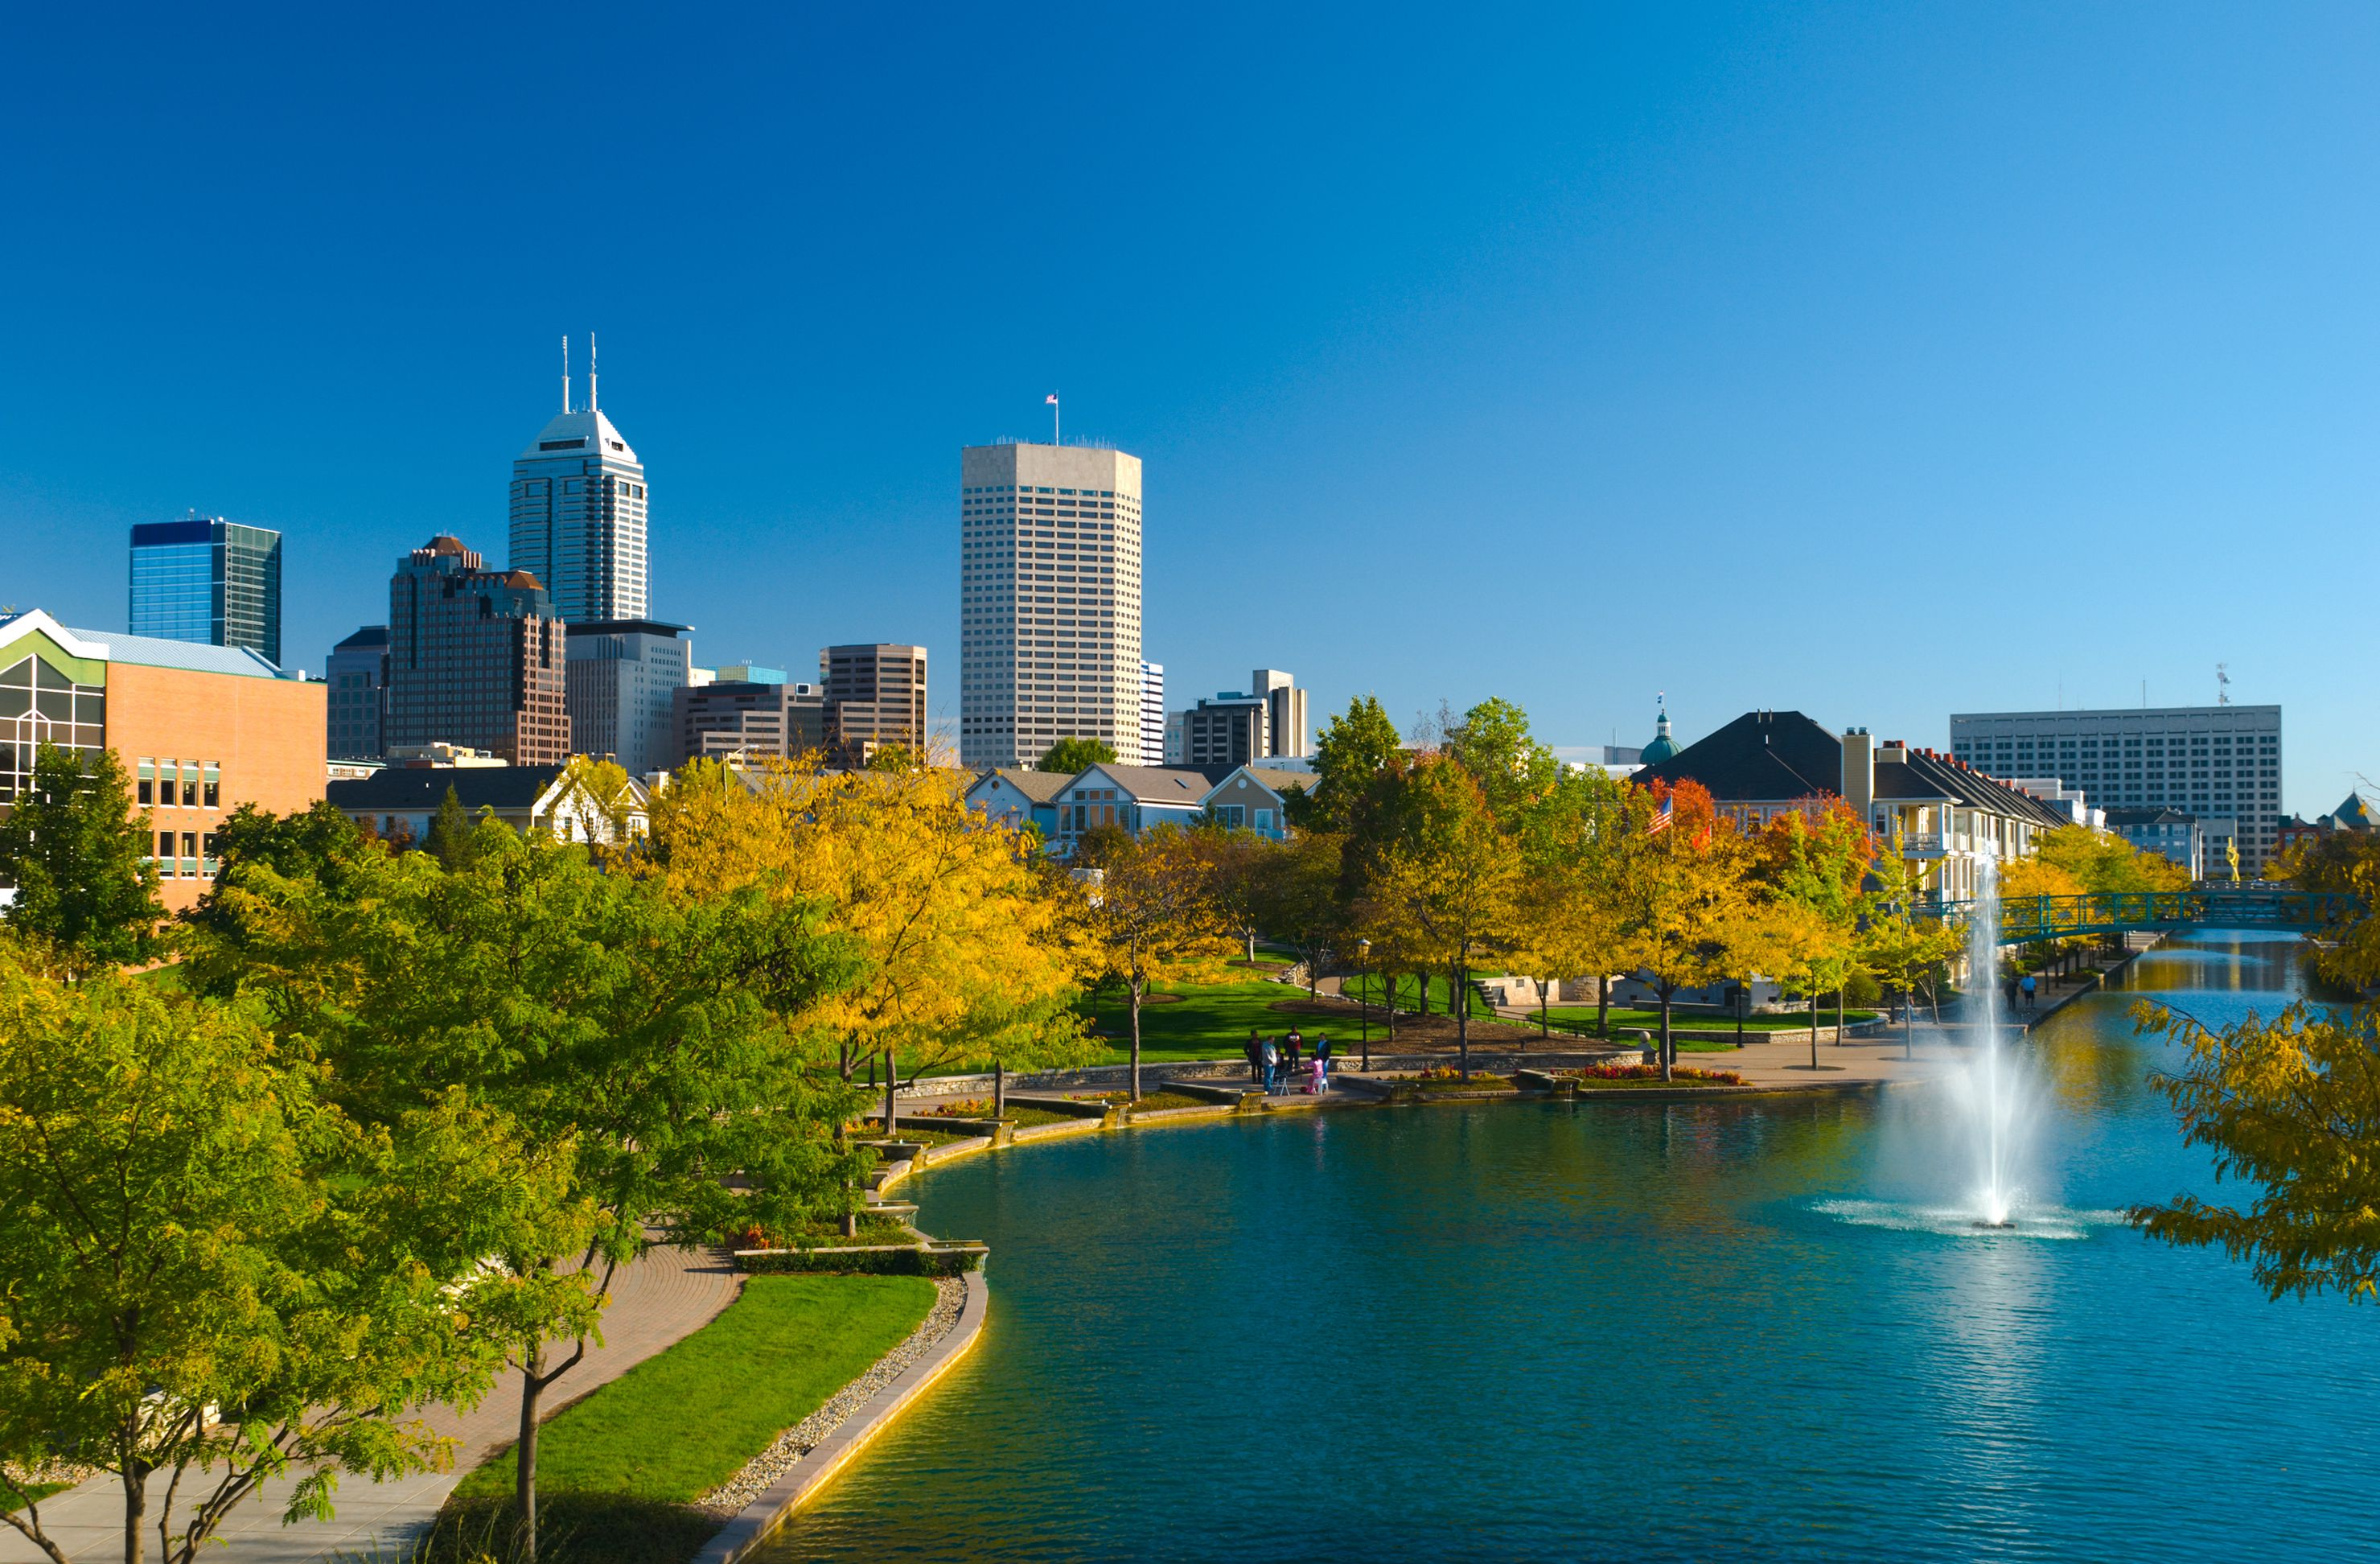 Indianapolis, IN | 10 Best Small Cities for Gamers